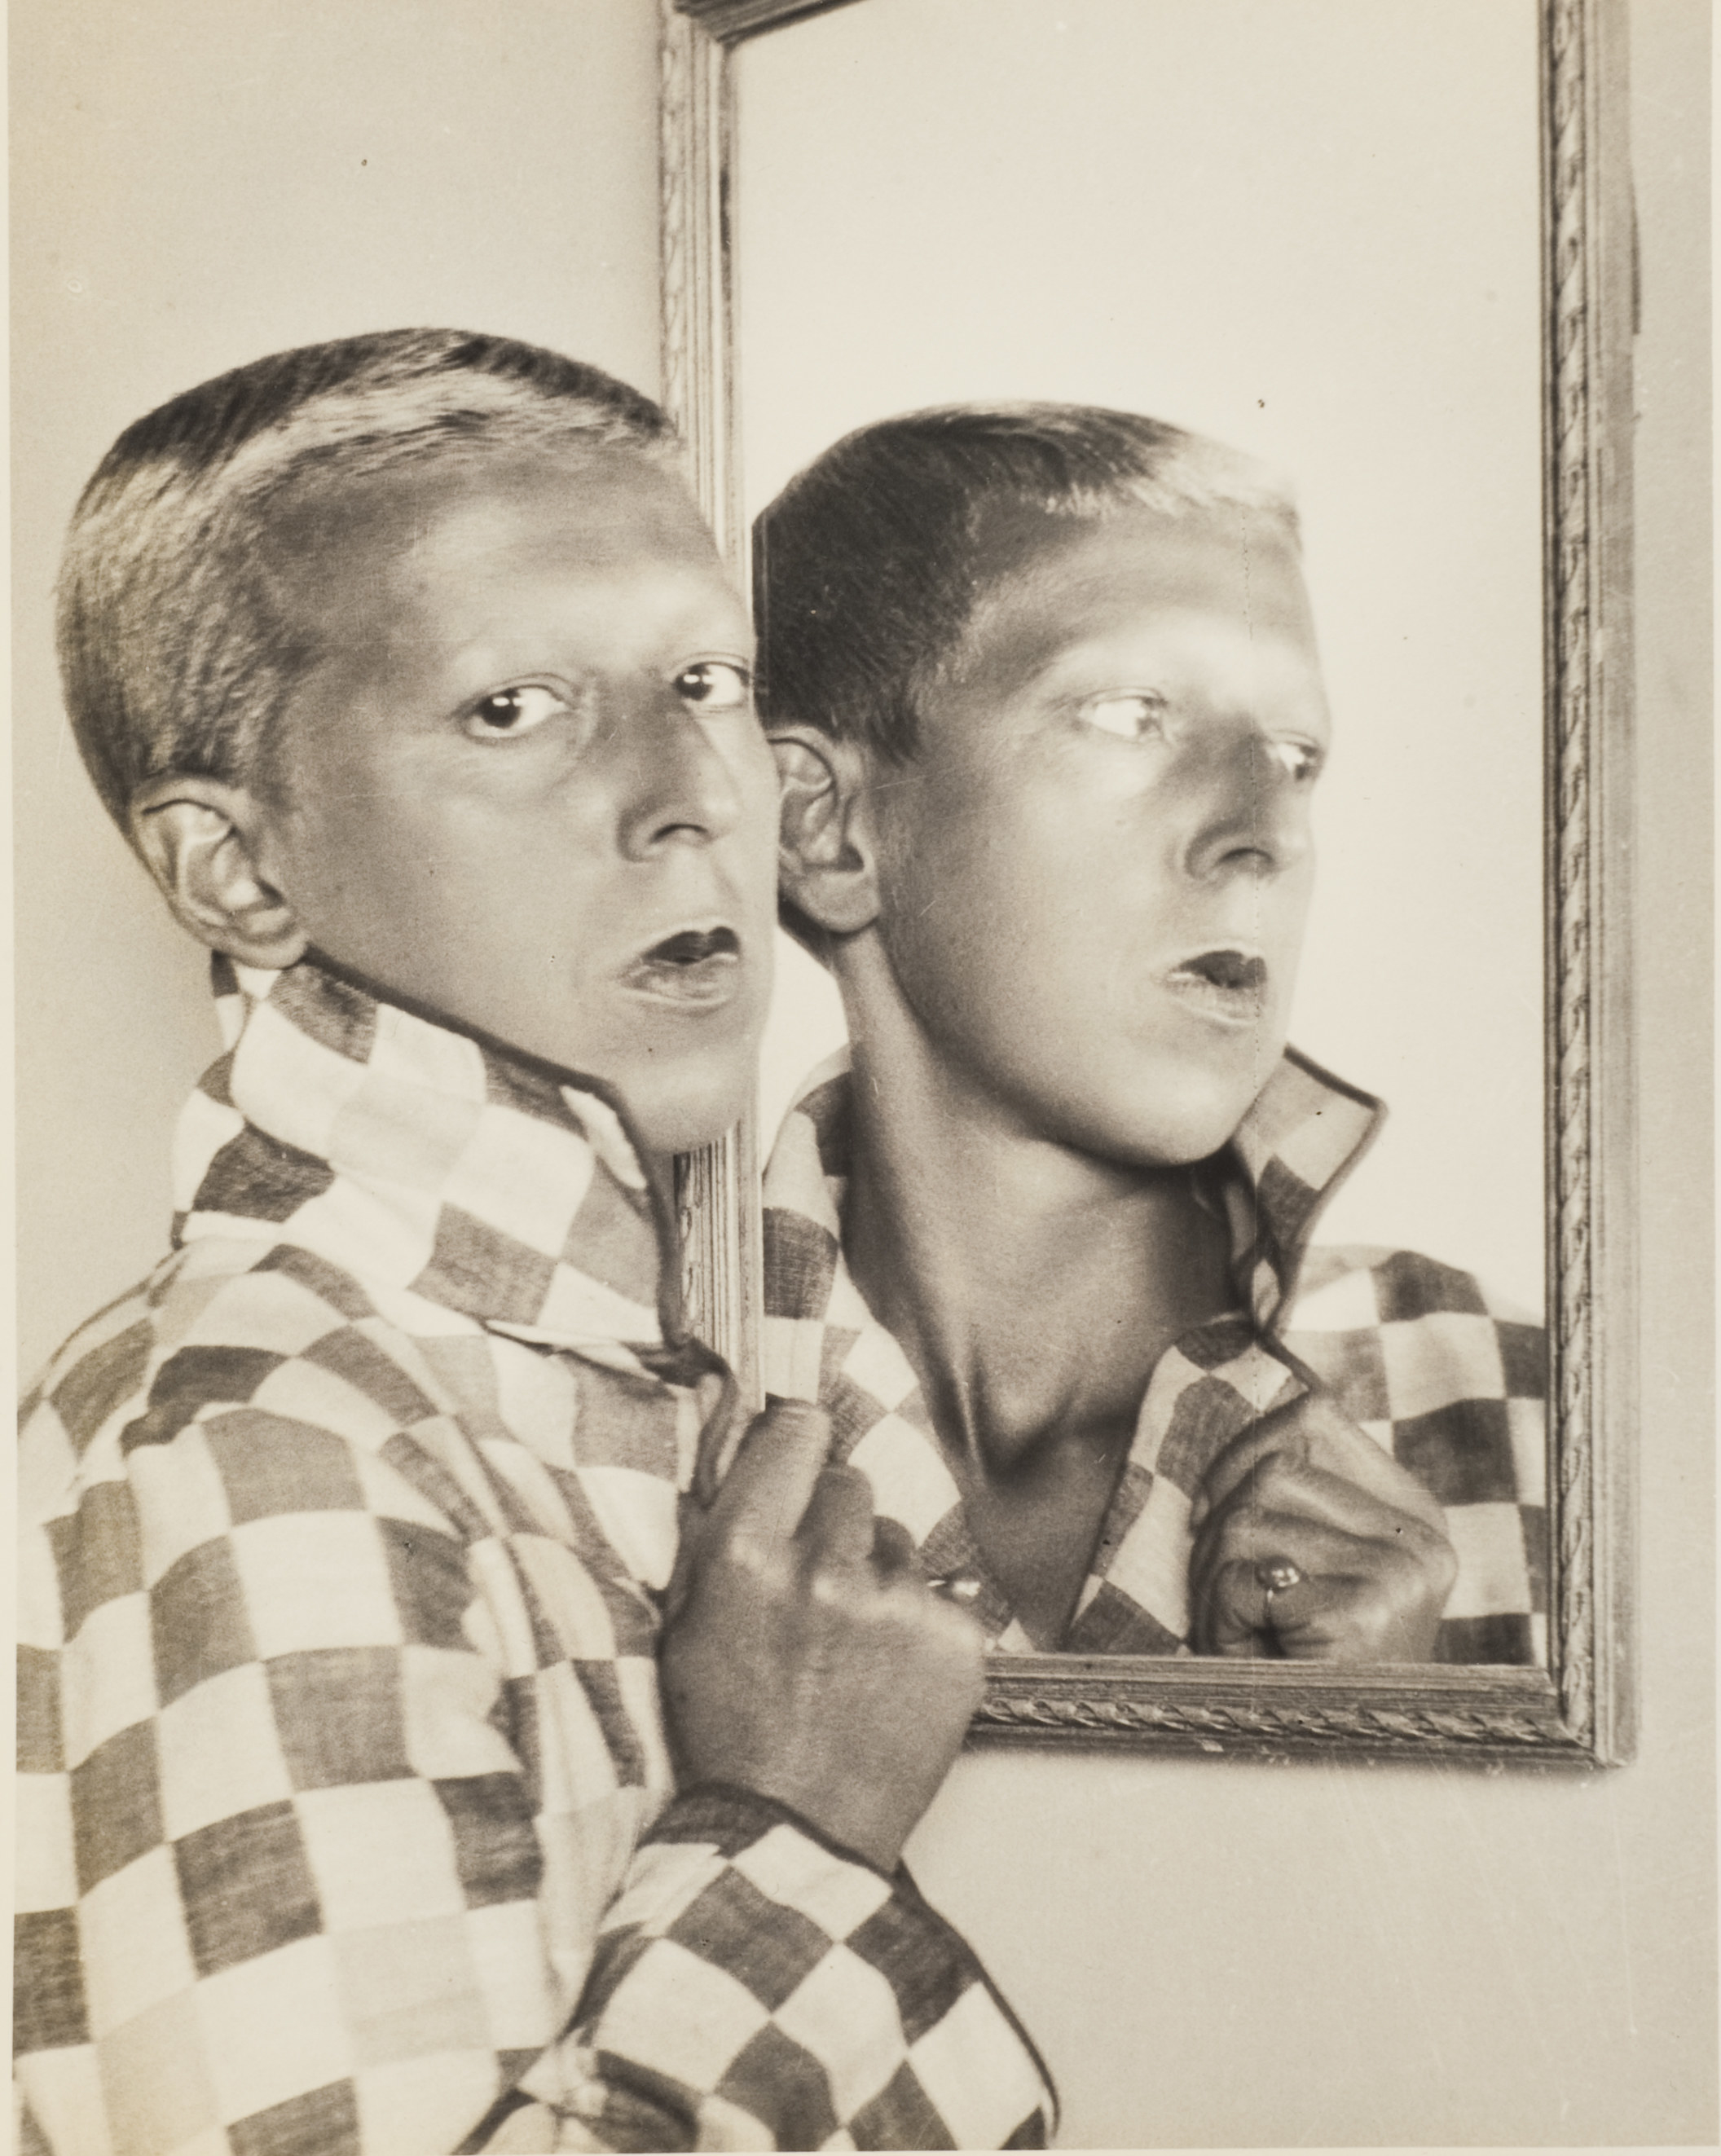 A person with short hair in a checkered jacket, looking back at the camera reflected in a mirror